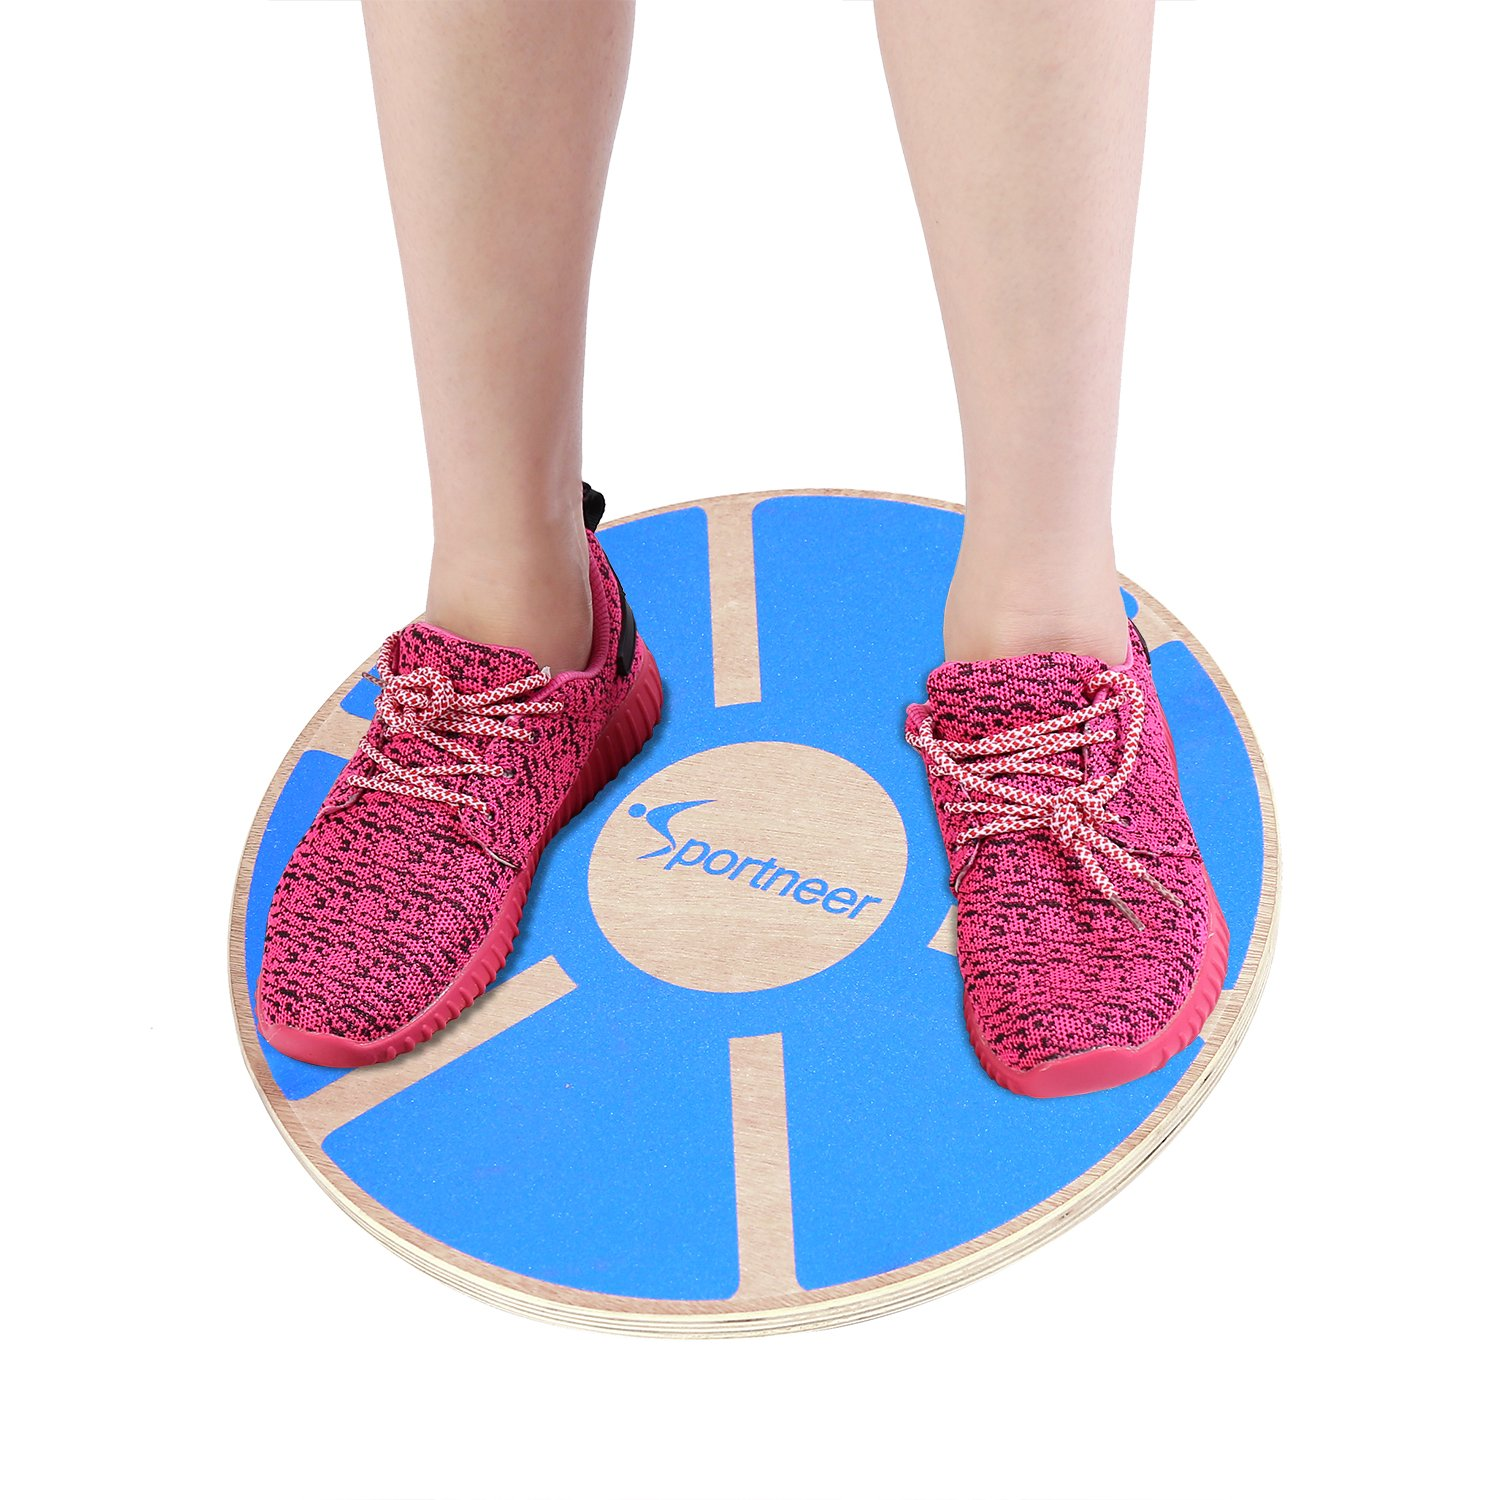 Sportneer Wooden Balance Board for Exercise, Gym, Sport Performance Enhancement, Rehab, Training, Blue